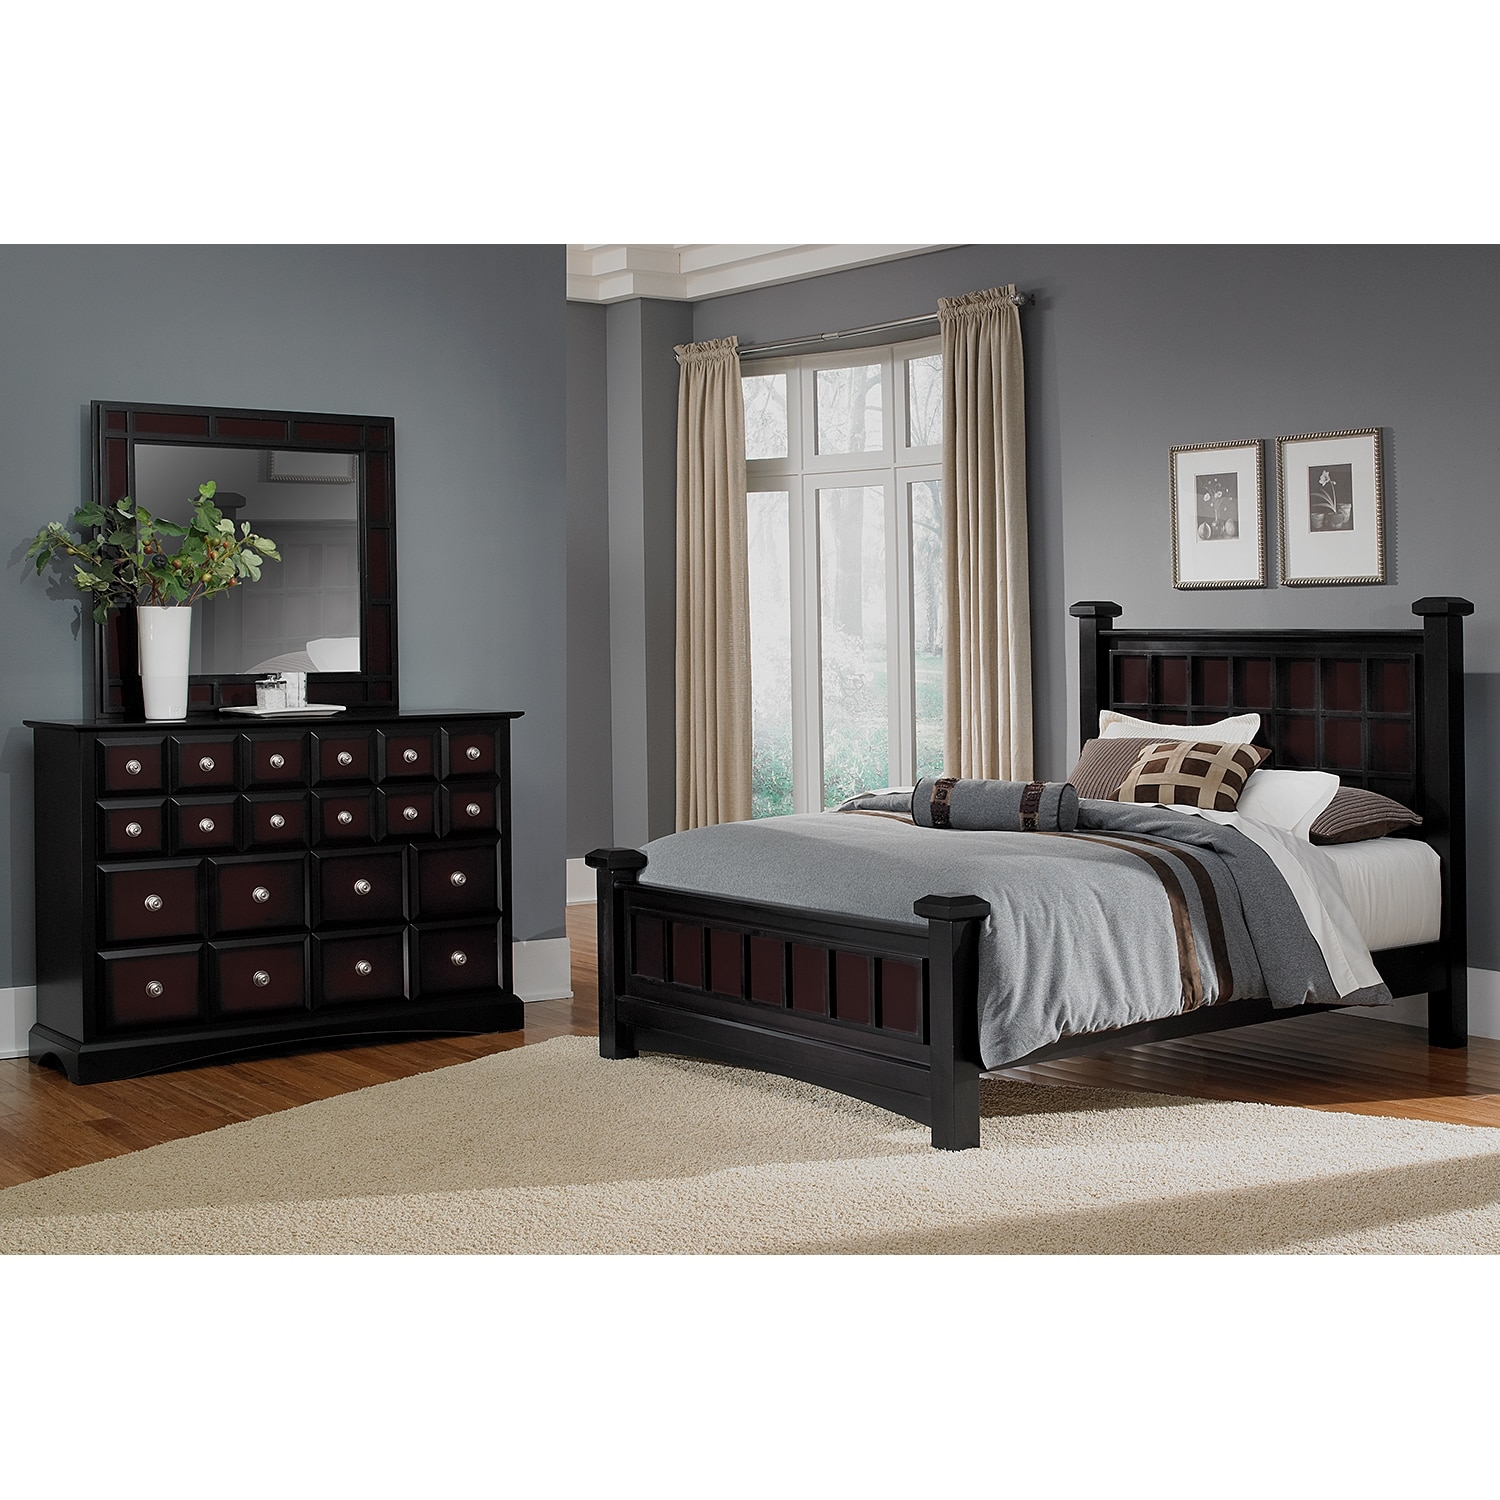 Winchester 5 pc king bedroom value city furniture for Furniture bedroom sets